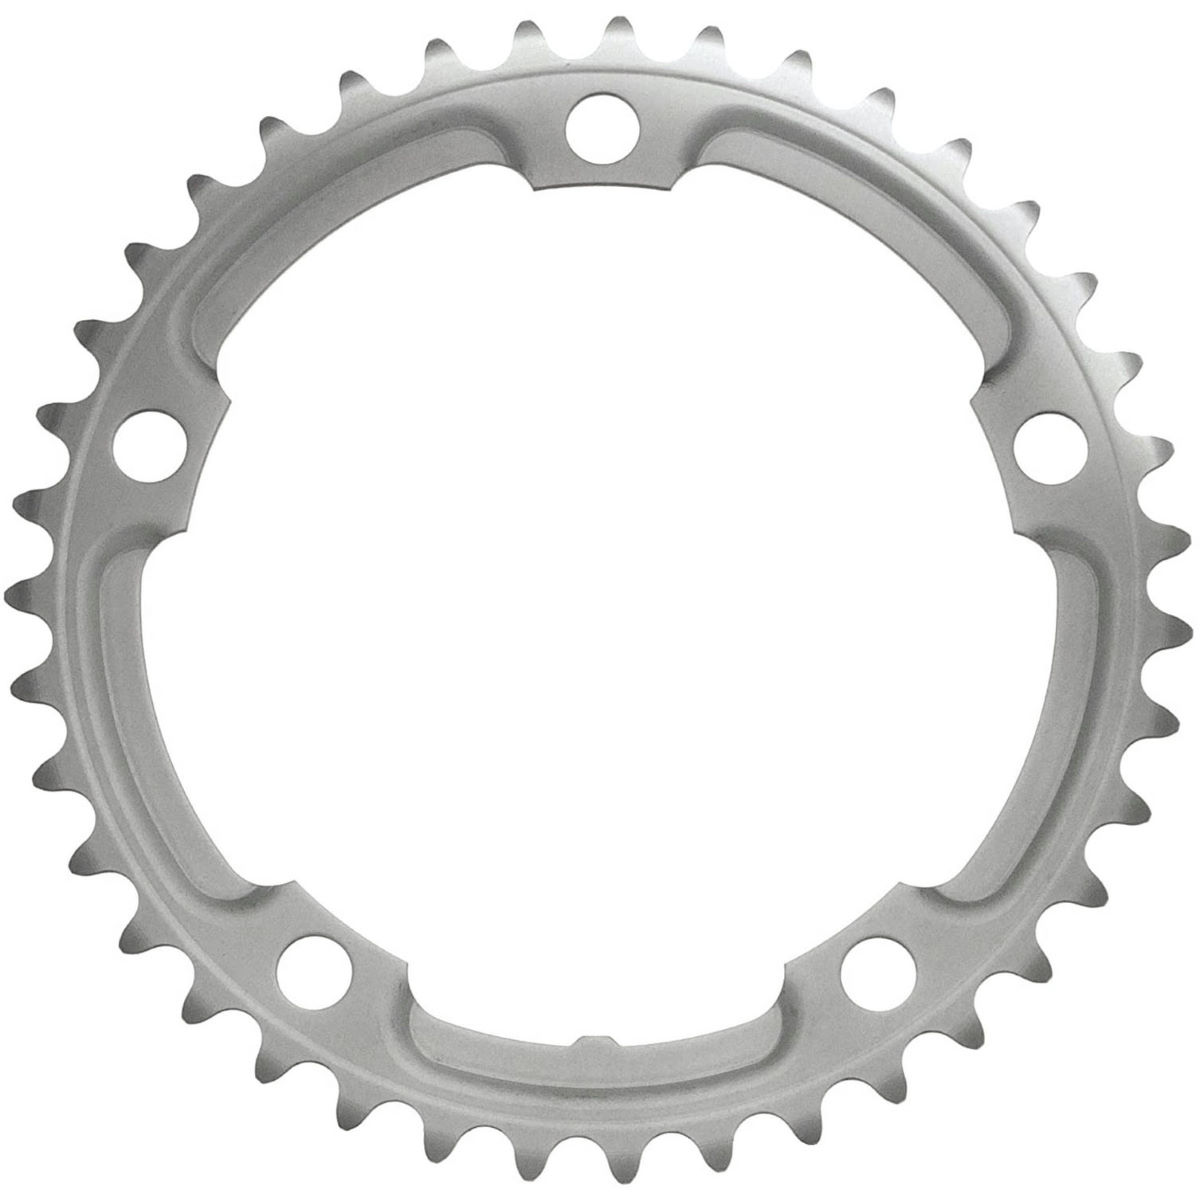 Shimano Tiagra Fc4600 10sp Double Chainrings - 39t 10 Speed Silver